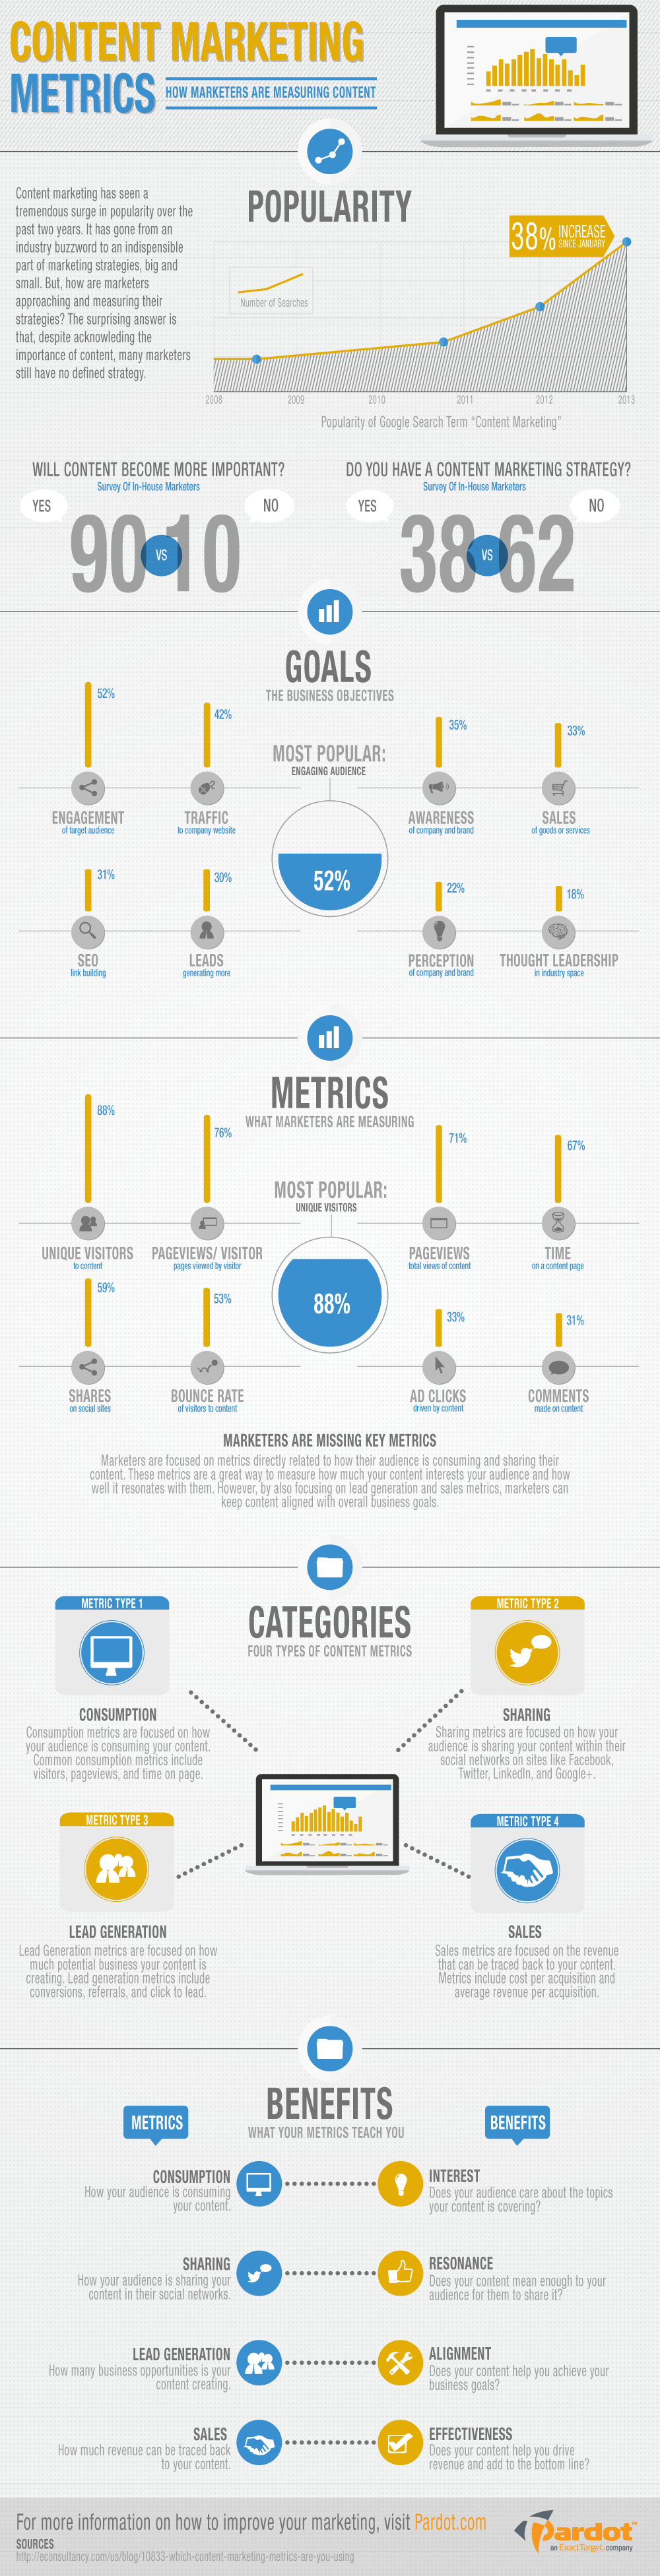 Content metrics to measure success